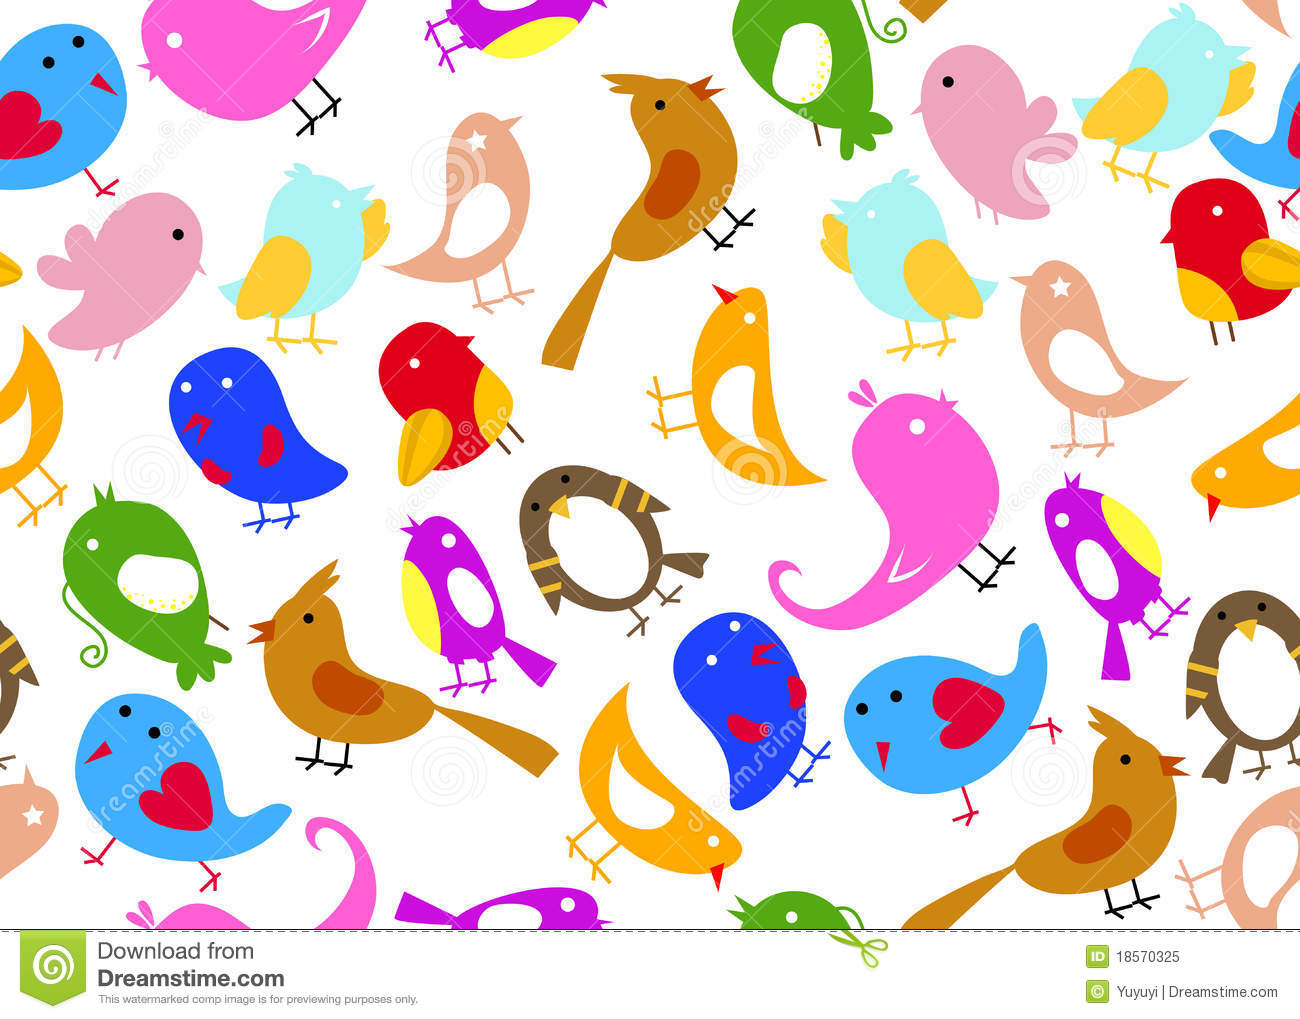 seamless bird wallpaper stock vector. illustration of pattern - 18570325